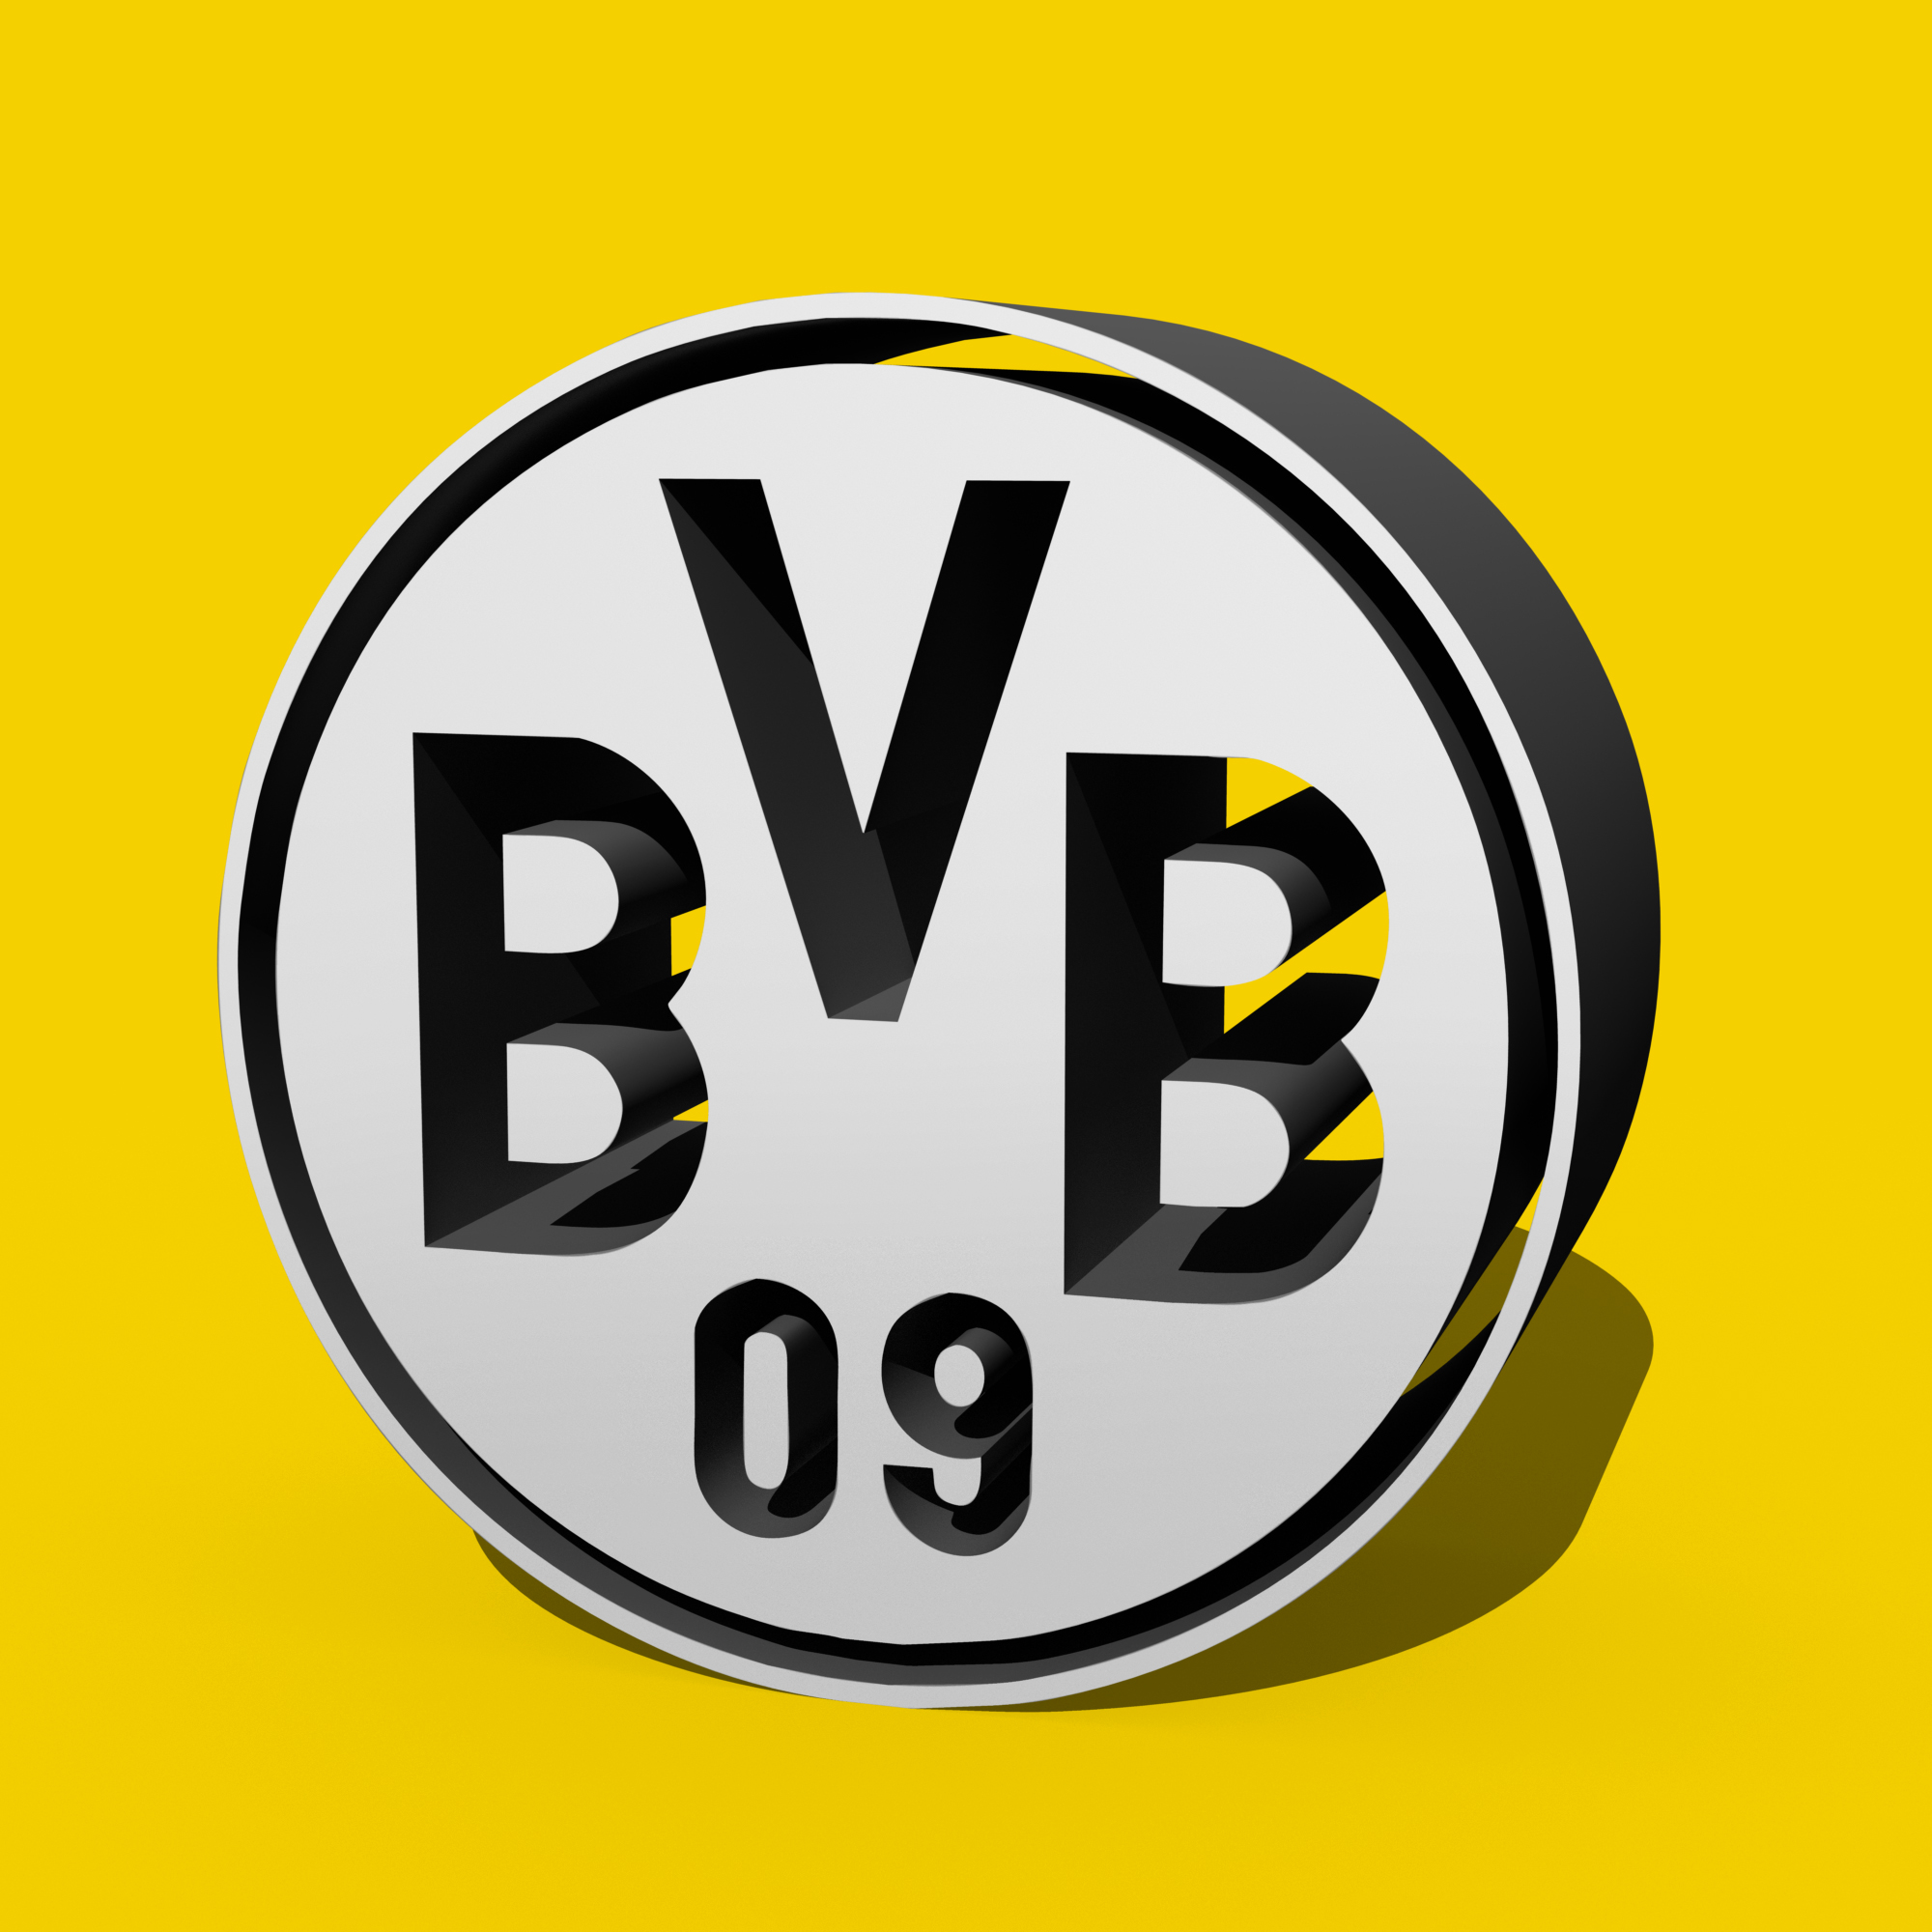 Dortmund Wallpaper 2013 Gallery - Wallpaper And Free Download